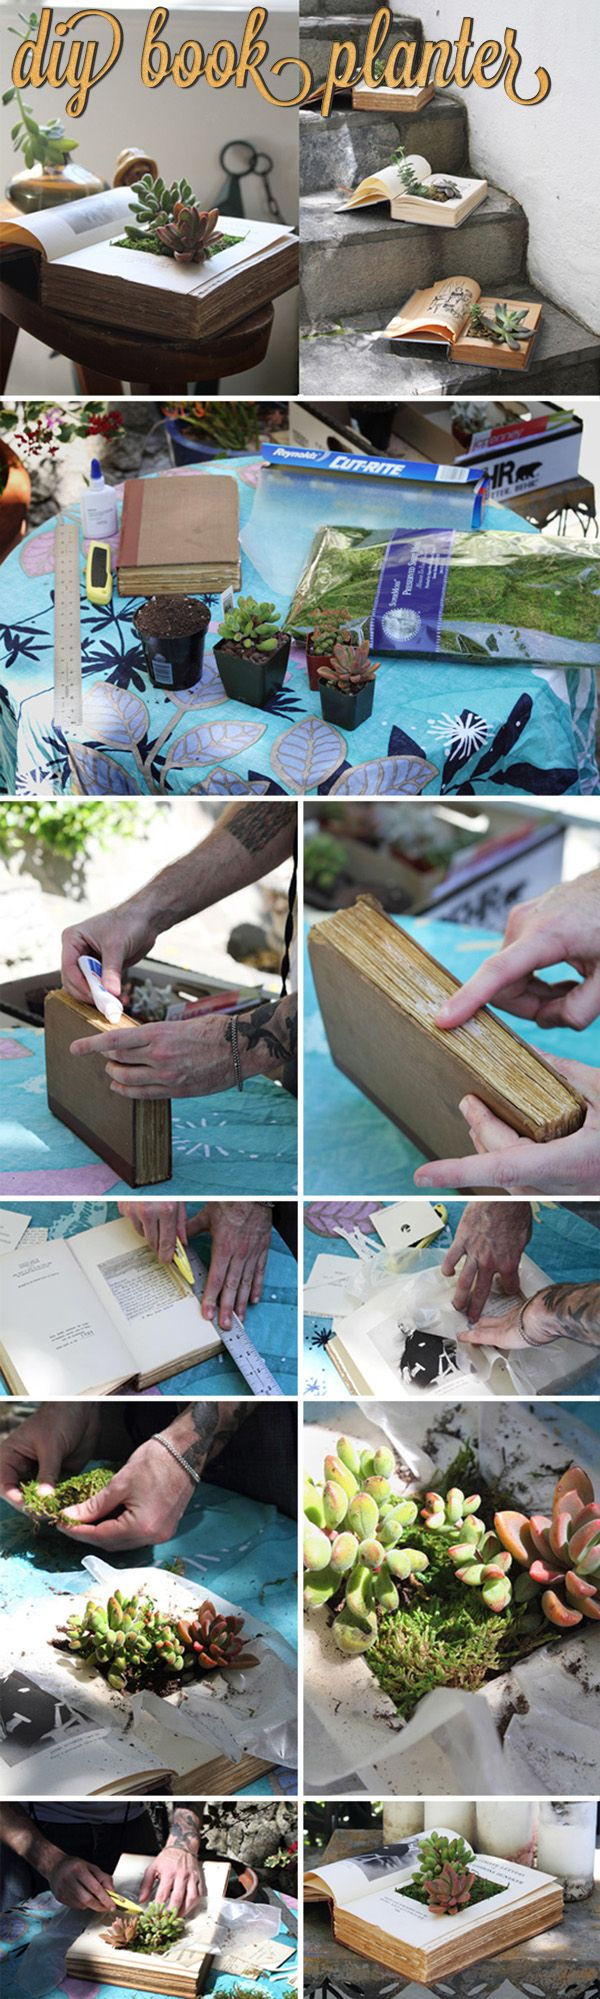 DIY INDOOR GARDEN / BOOK CRAFTS :: DIY Book Planter :: Materials: 1 book, parchment paper/plastic bag, white glue or Mod-Podge :: TIPS: The night before, rub some glue or MP on the edges of the pages to help when cutting. After cutting, rub some glue or MP on the inside of the pages where you've cut out to seal. Try cutting to the size of a tofu tub & using that as lining instead of parchment or plastic. For succulents, mix sand in the soil & plant larger ones in the corners for support.